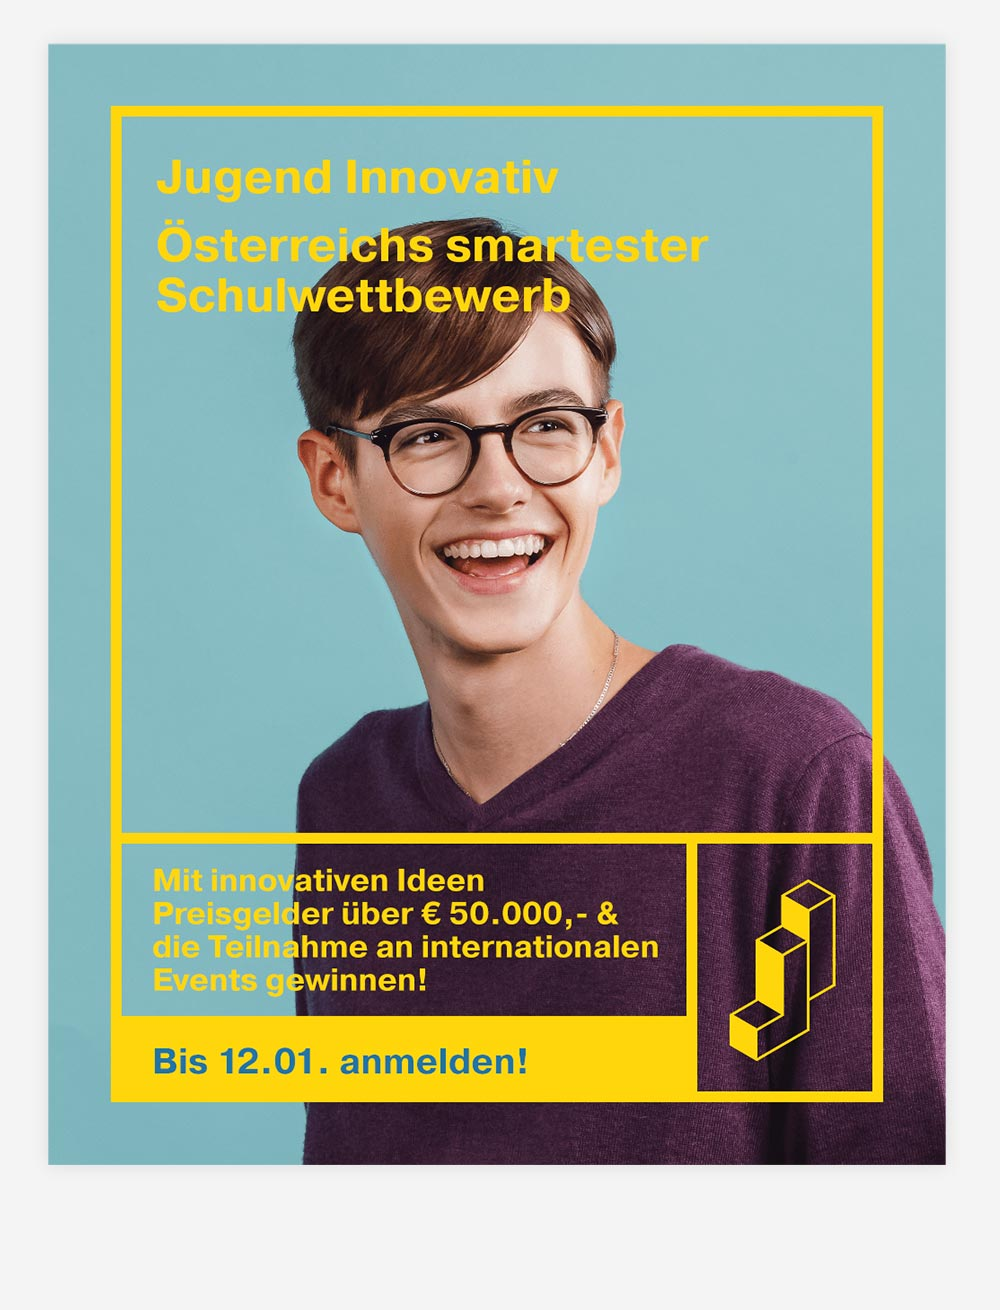 aws jugend innovativ, C21 new media design, Social Media Kampagne, Facebook, Instagram